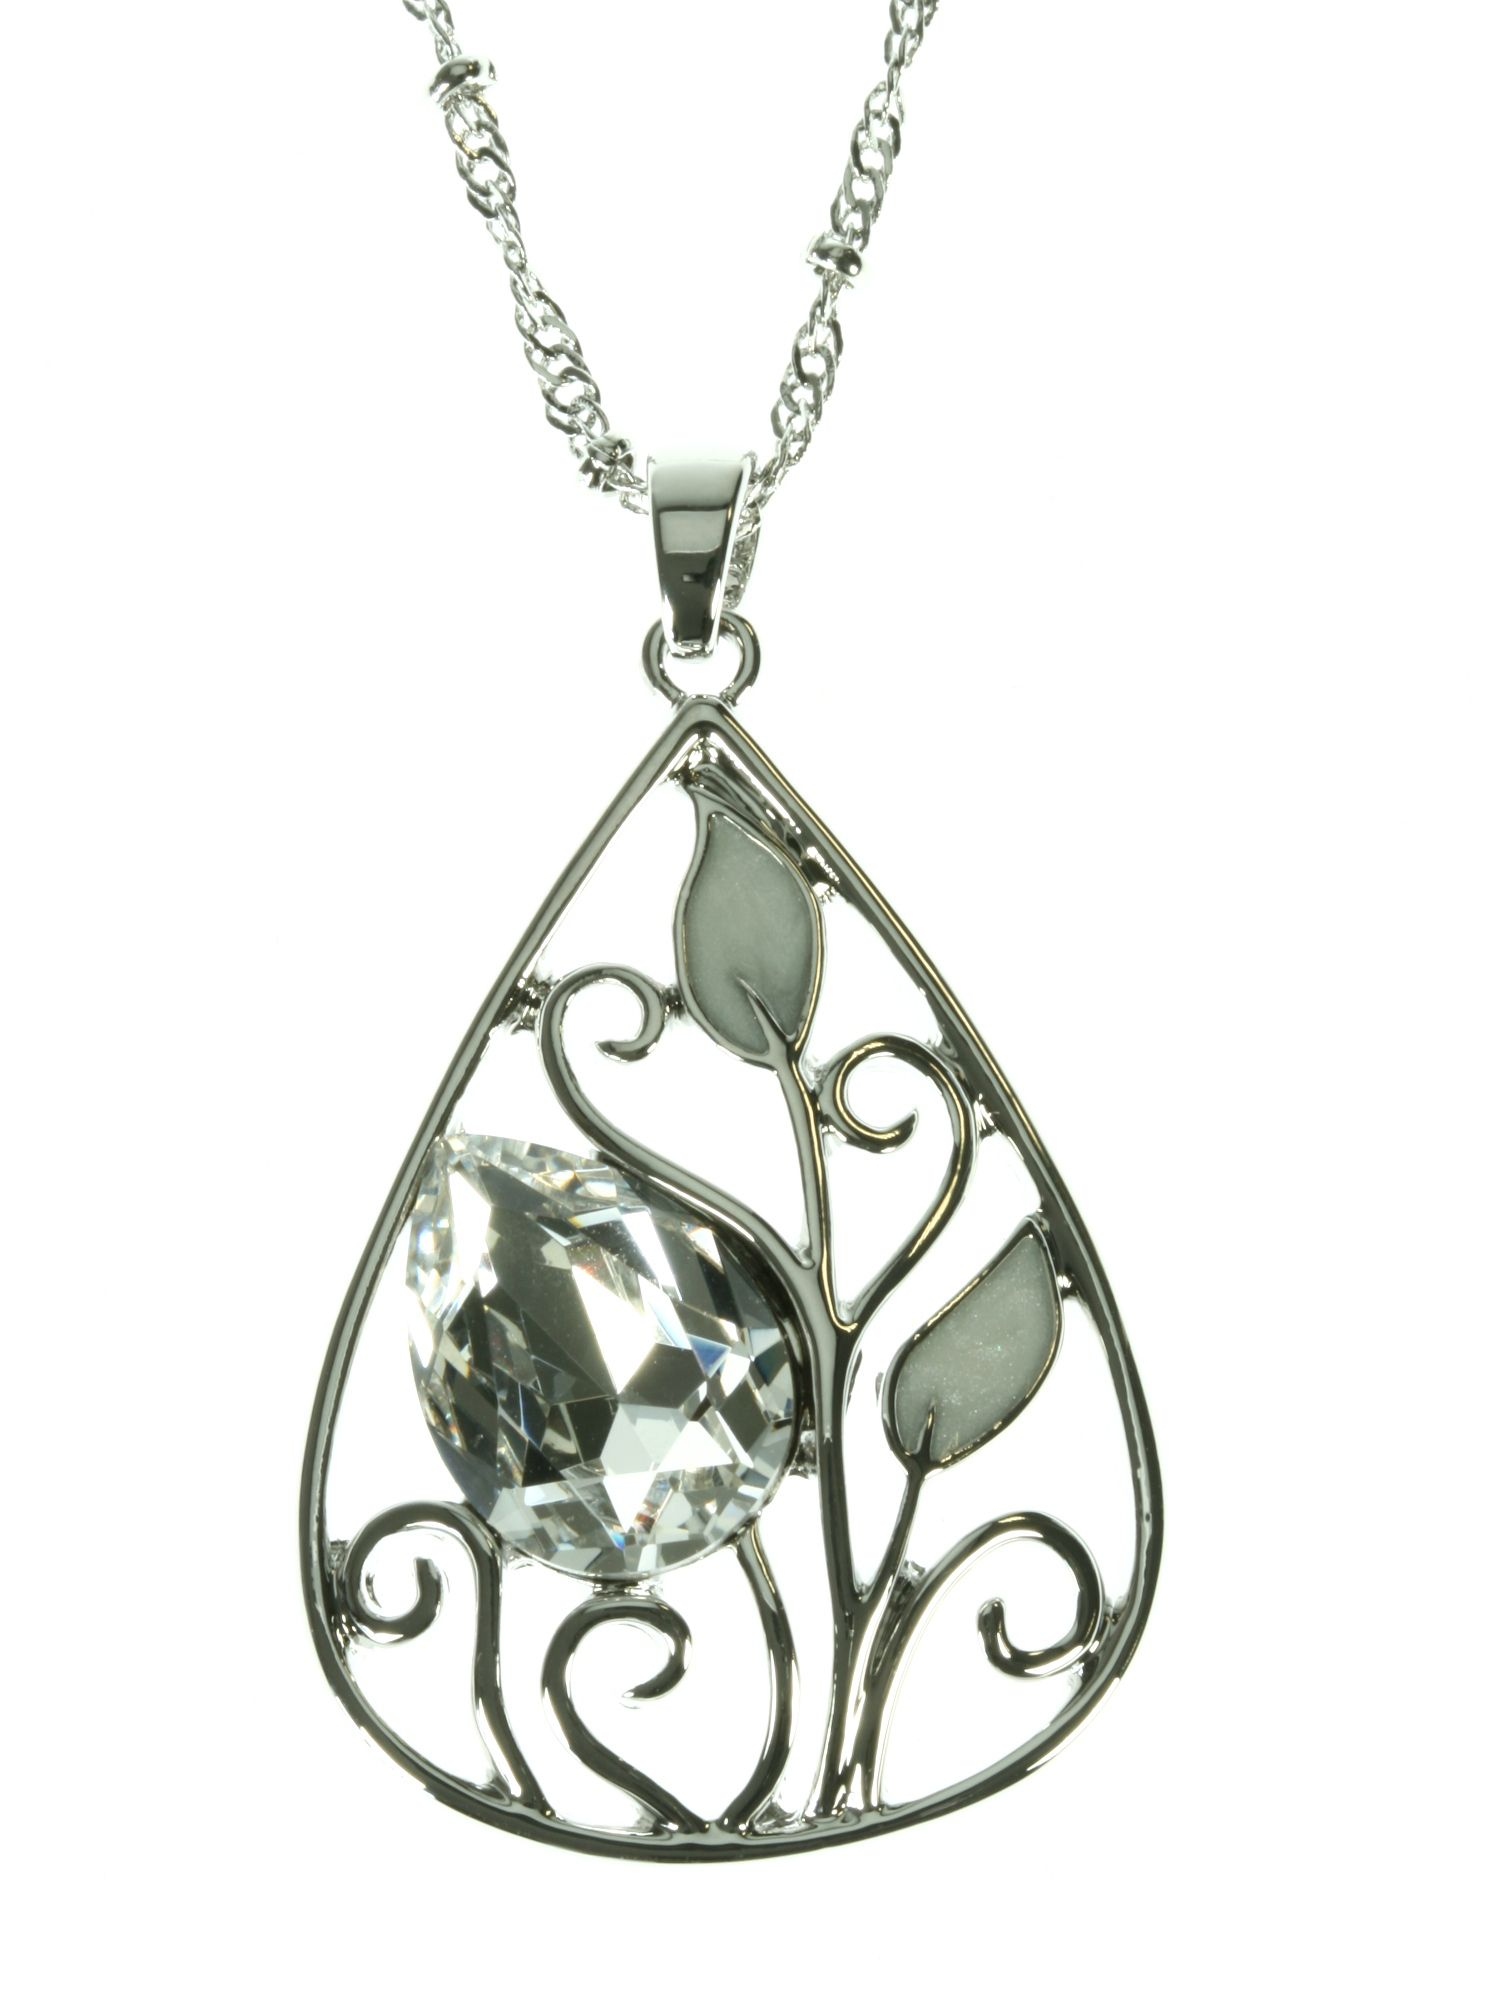 Rhodium plated pendant with large clear crystal a